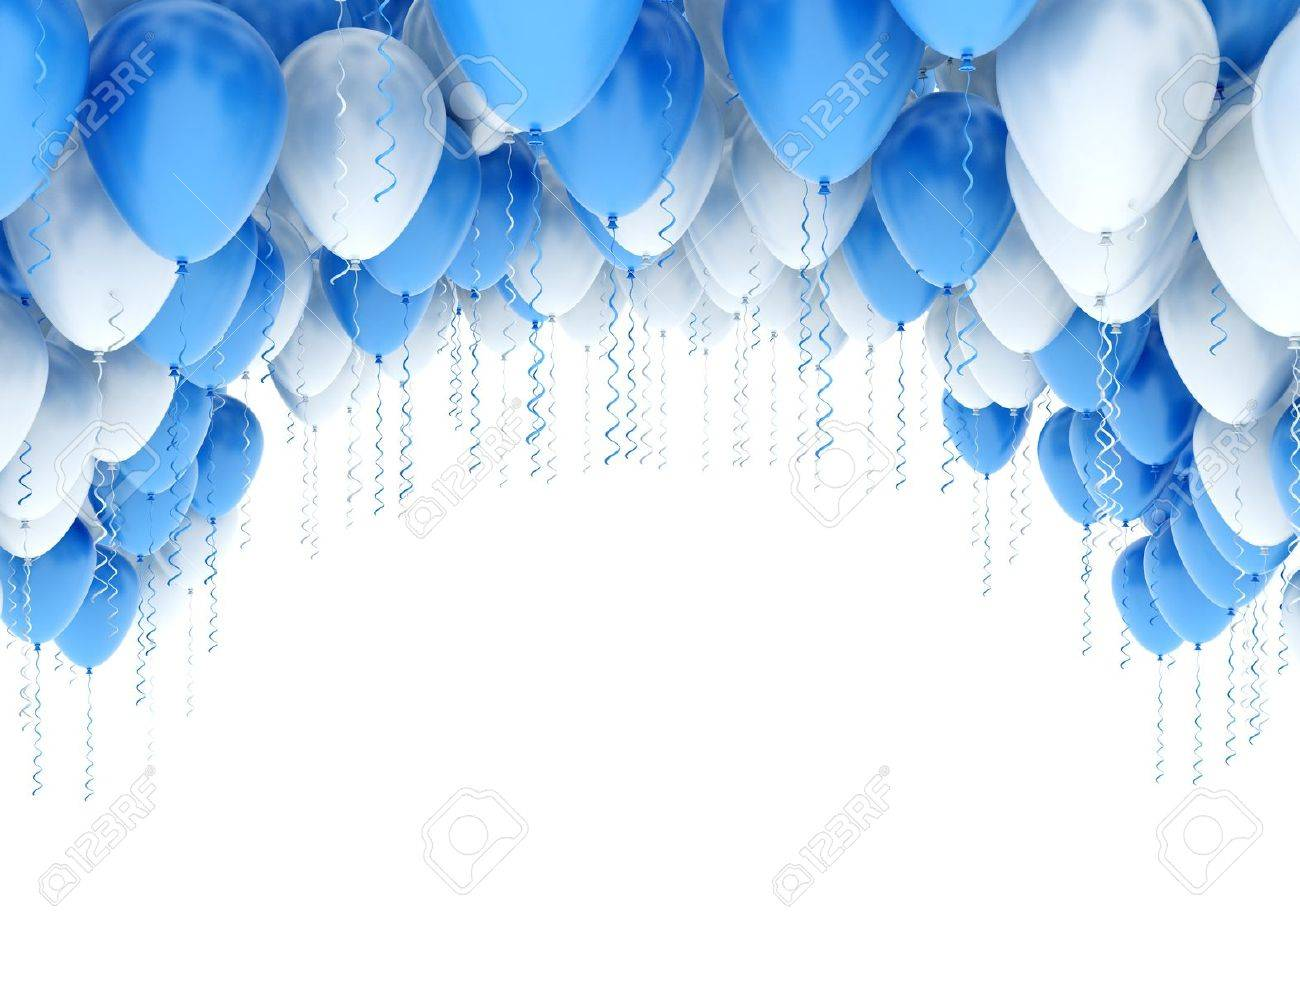 28,207 Blue Balloon Stock Vector Illustration And Royalty Free ...